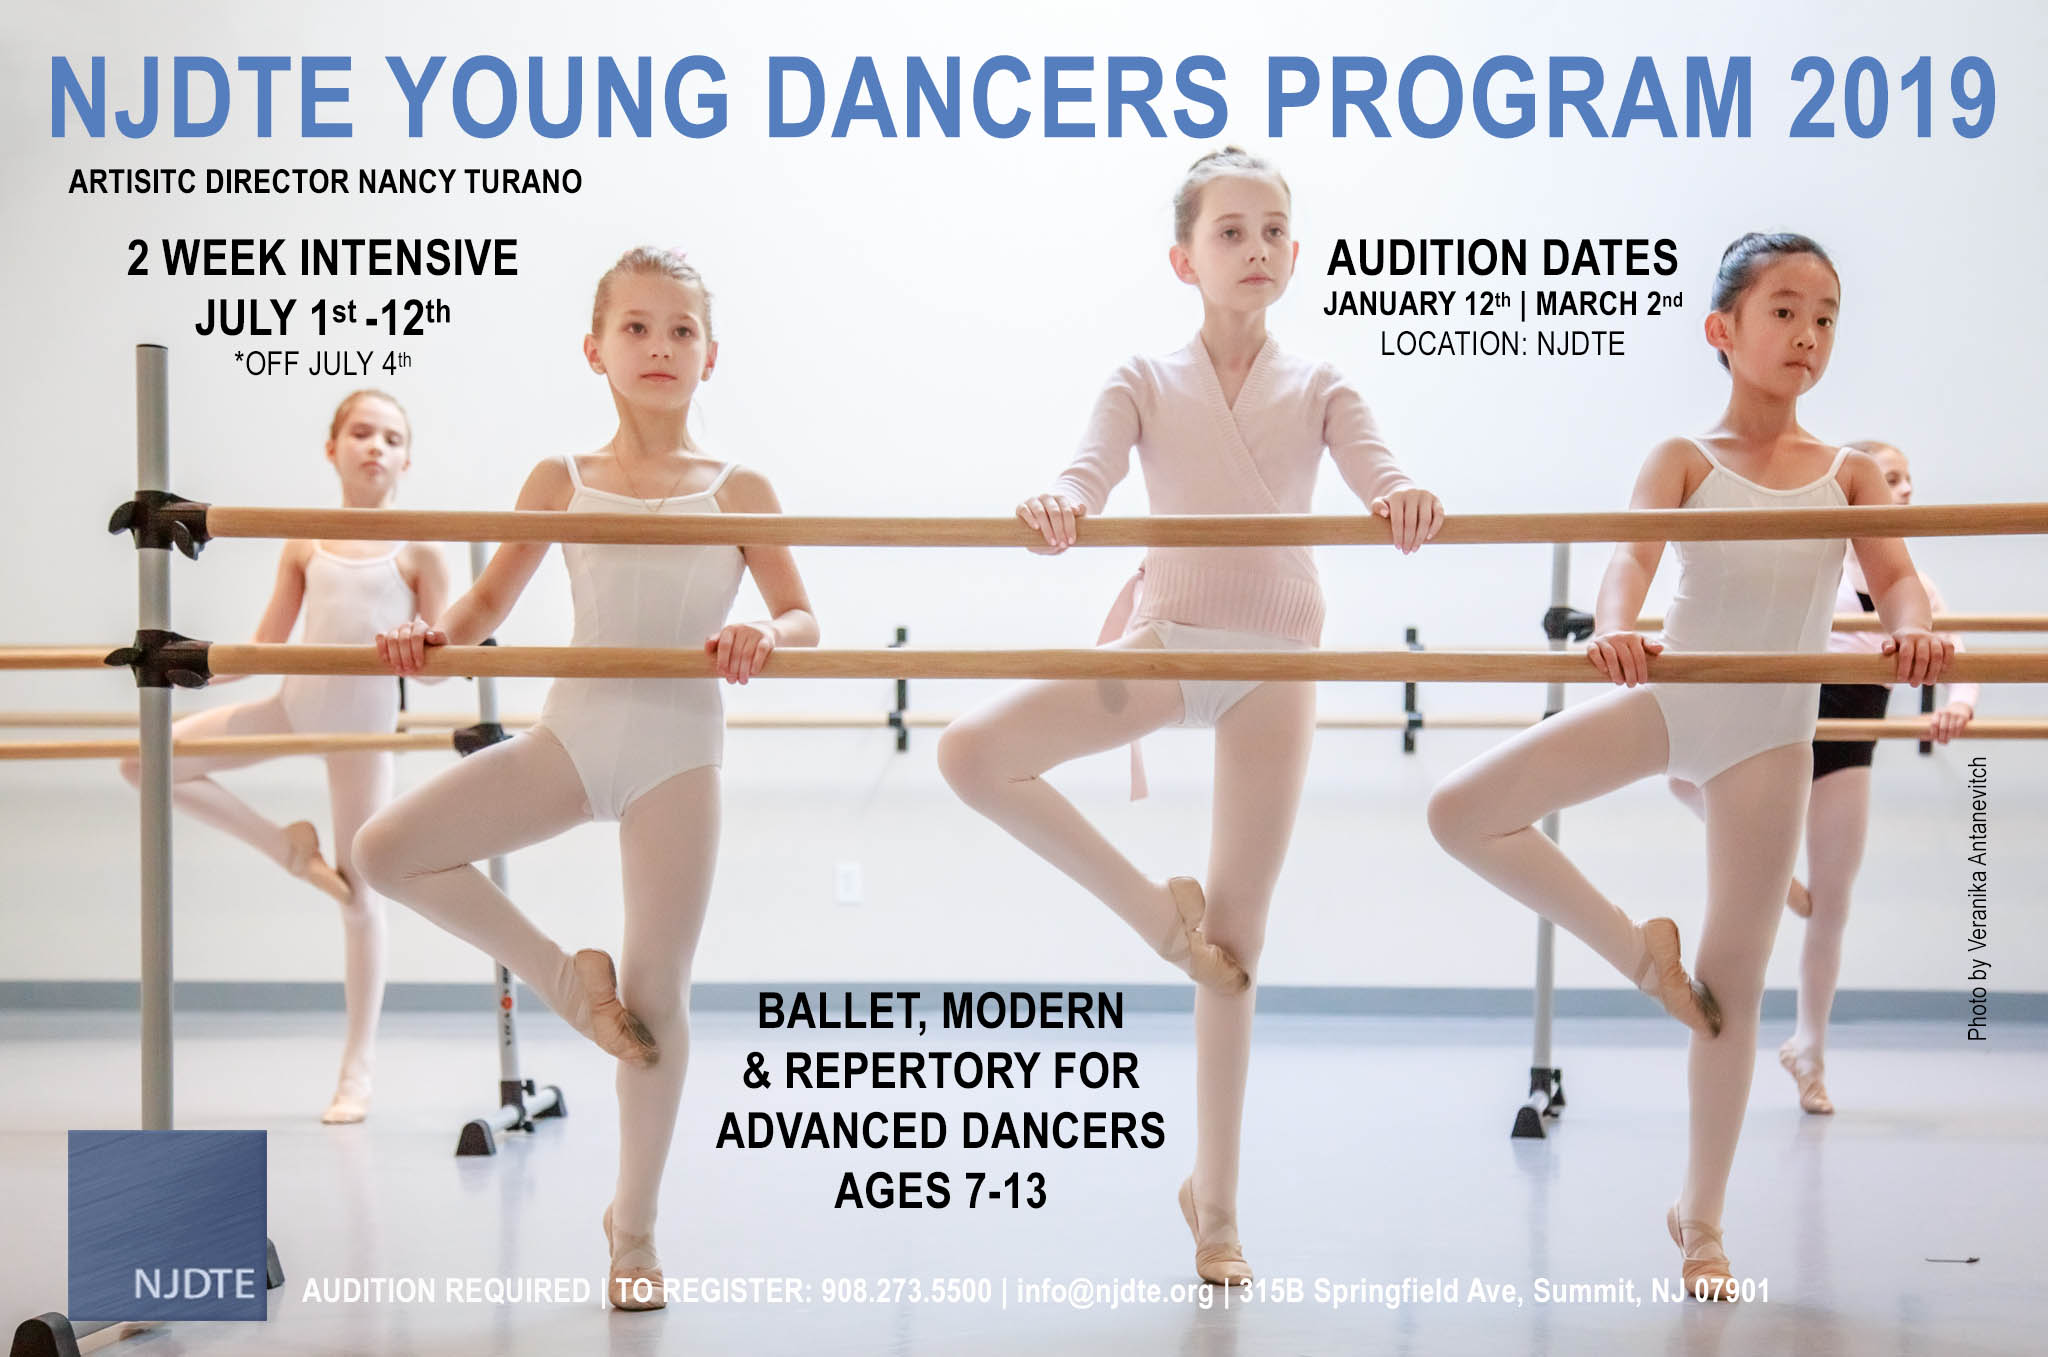 2019 Young Dancer Program | New Jersey Dance Theatre Ensemble